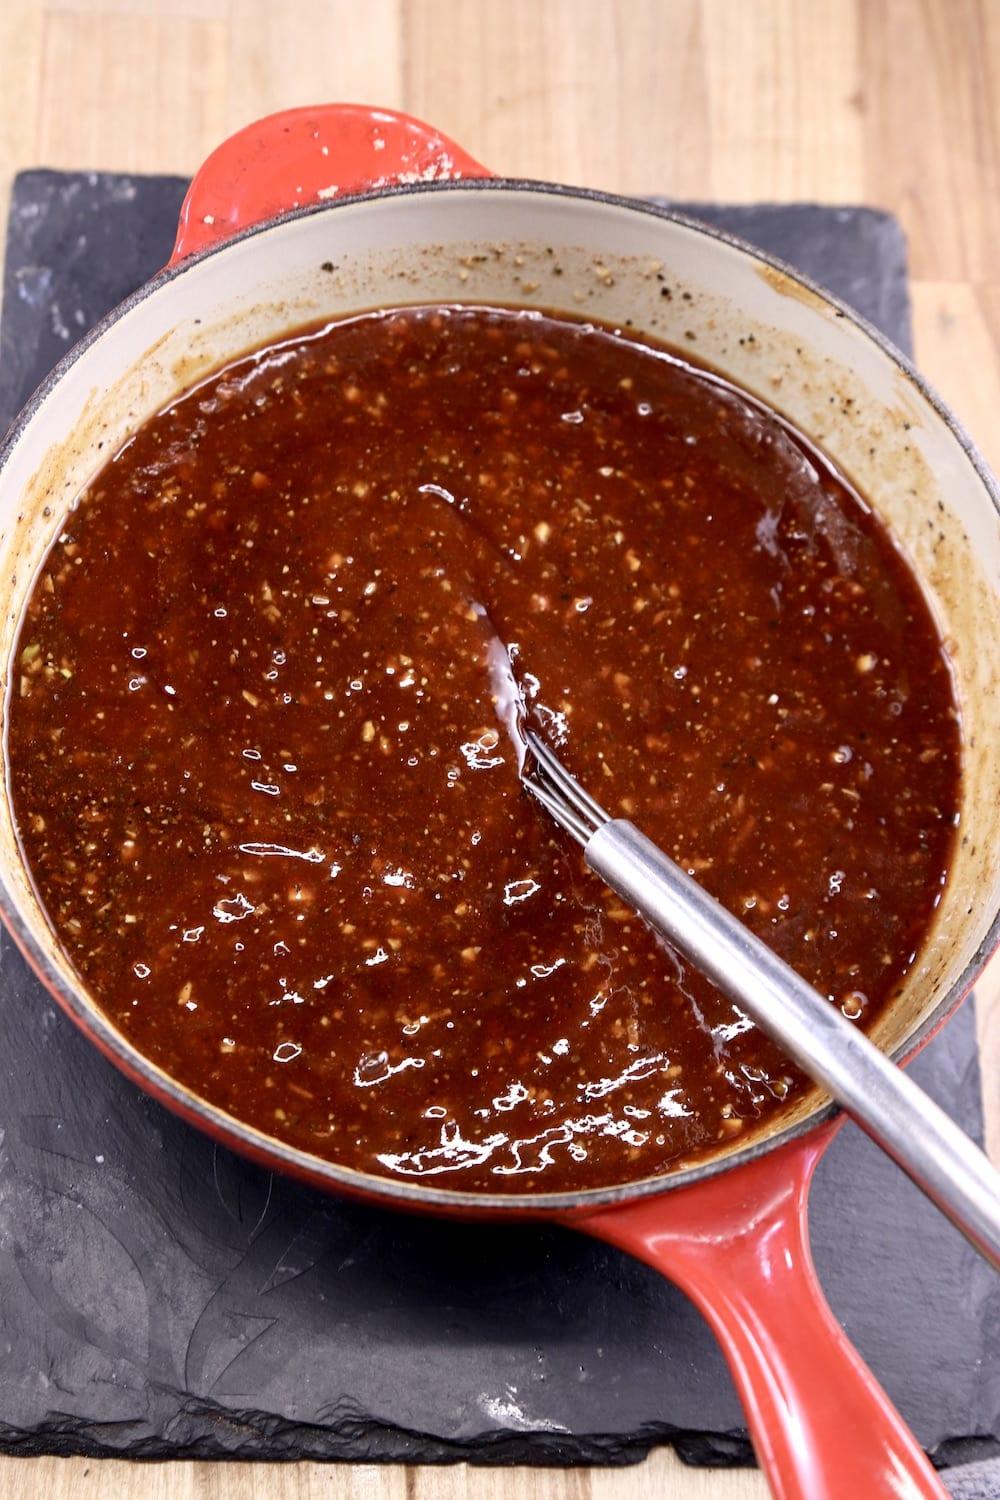 Pan of bbq sauce with a whisk